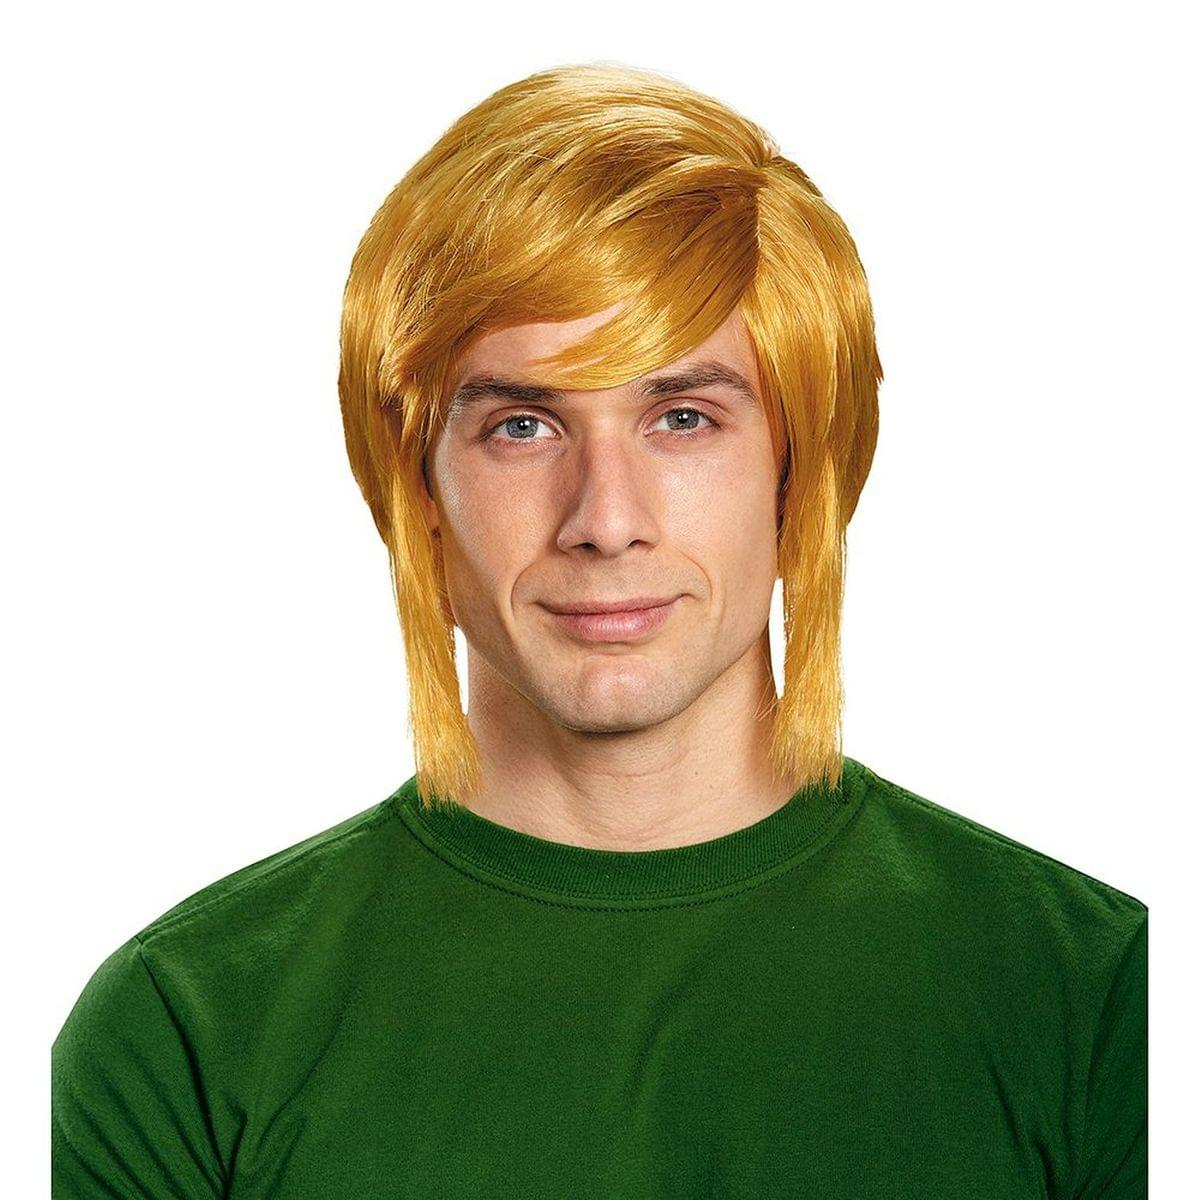 Legend of Zelda Link Adult Wig Costume Accessory